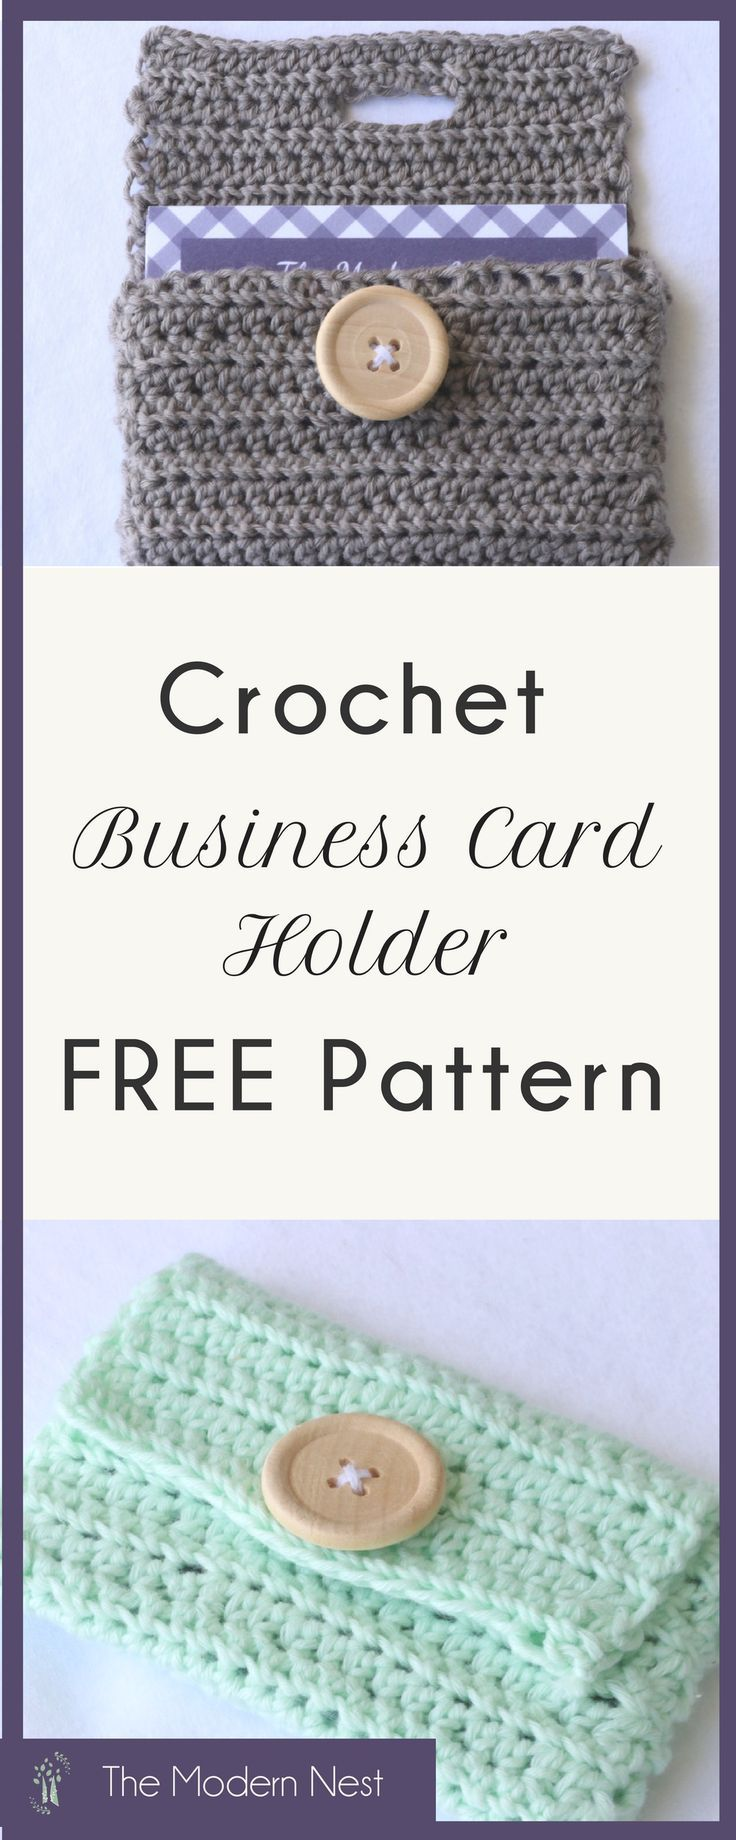 Business card holder crochet pattern free crochet patterns from my do you ever get business cards and dont know where to put them heres a free business card holder crochet pattern to help you keep them organized reheart Choice Image